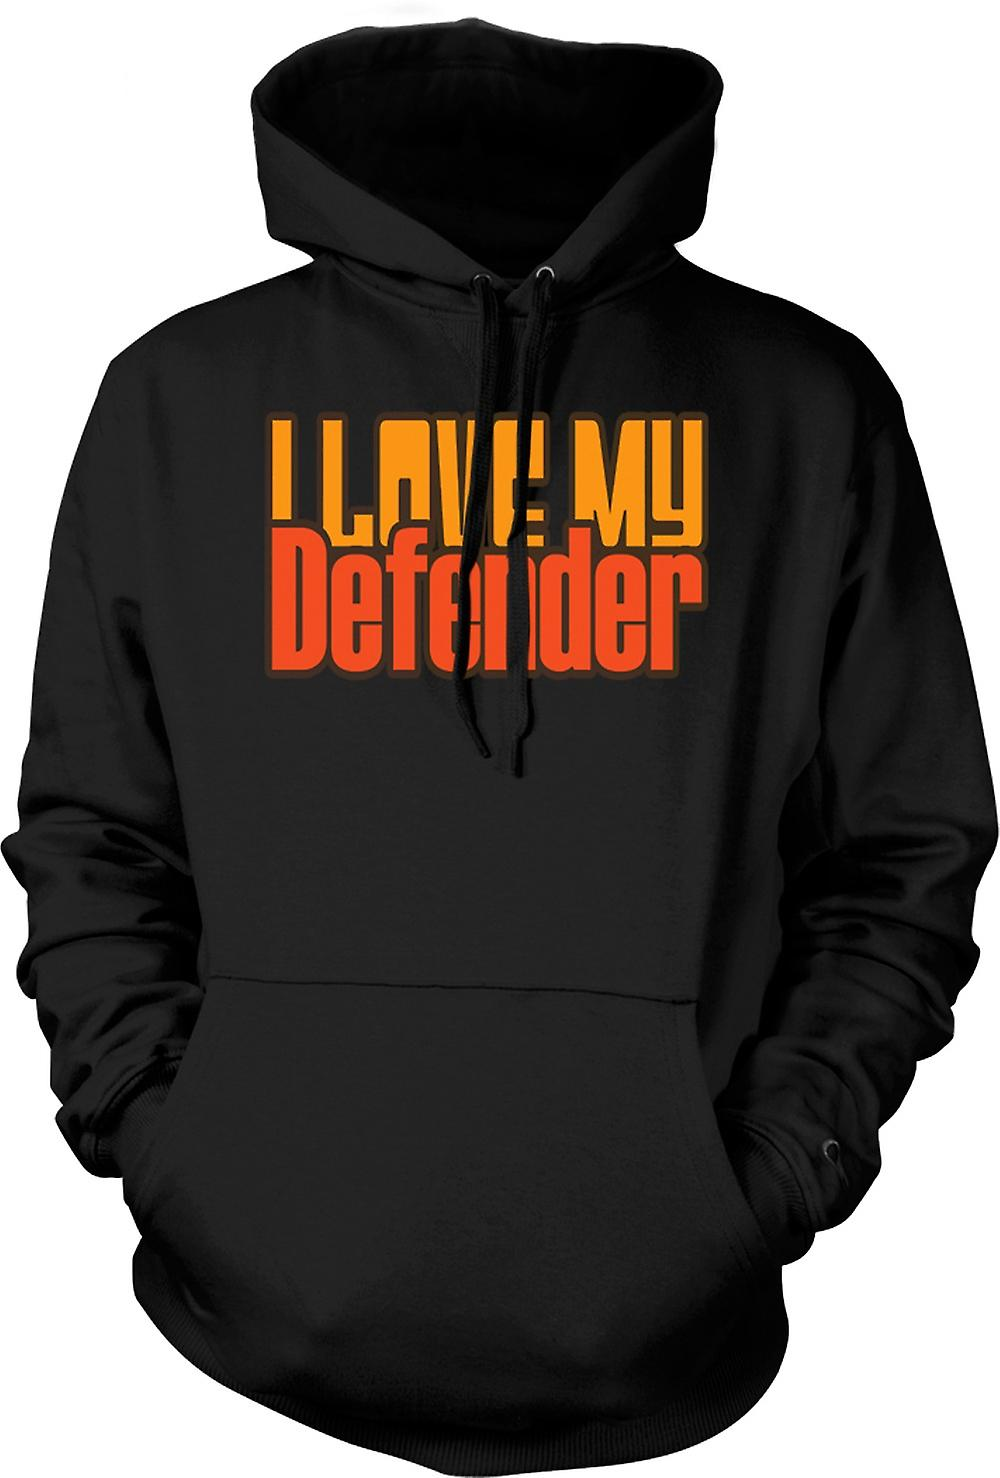 Mens Hoodie - I Love My Defender - Car Enthusiast